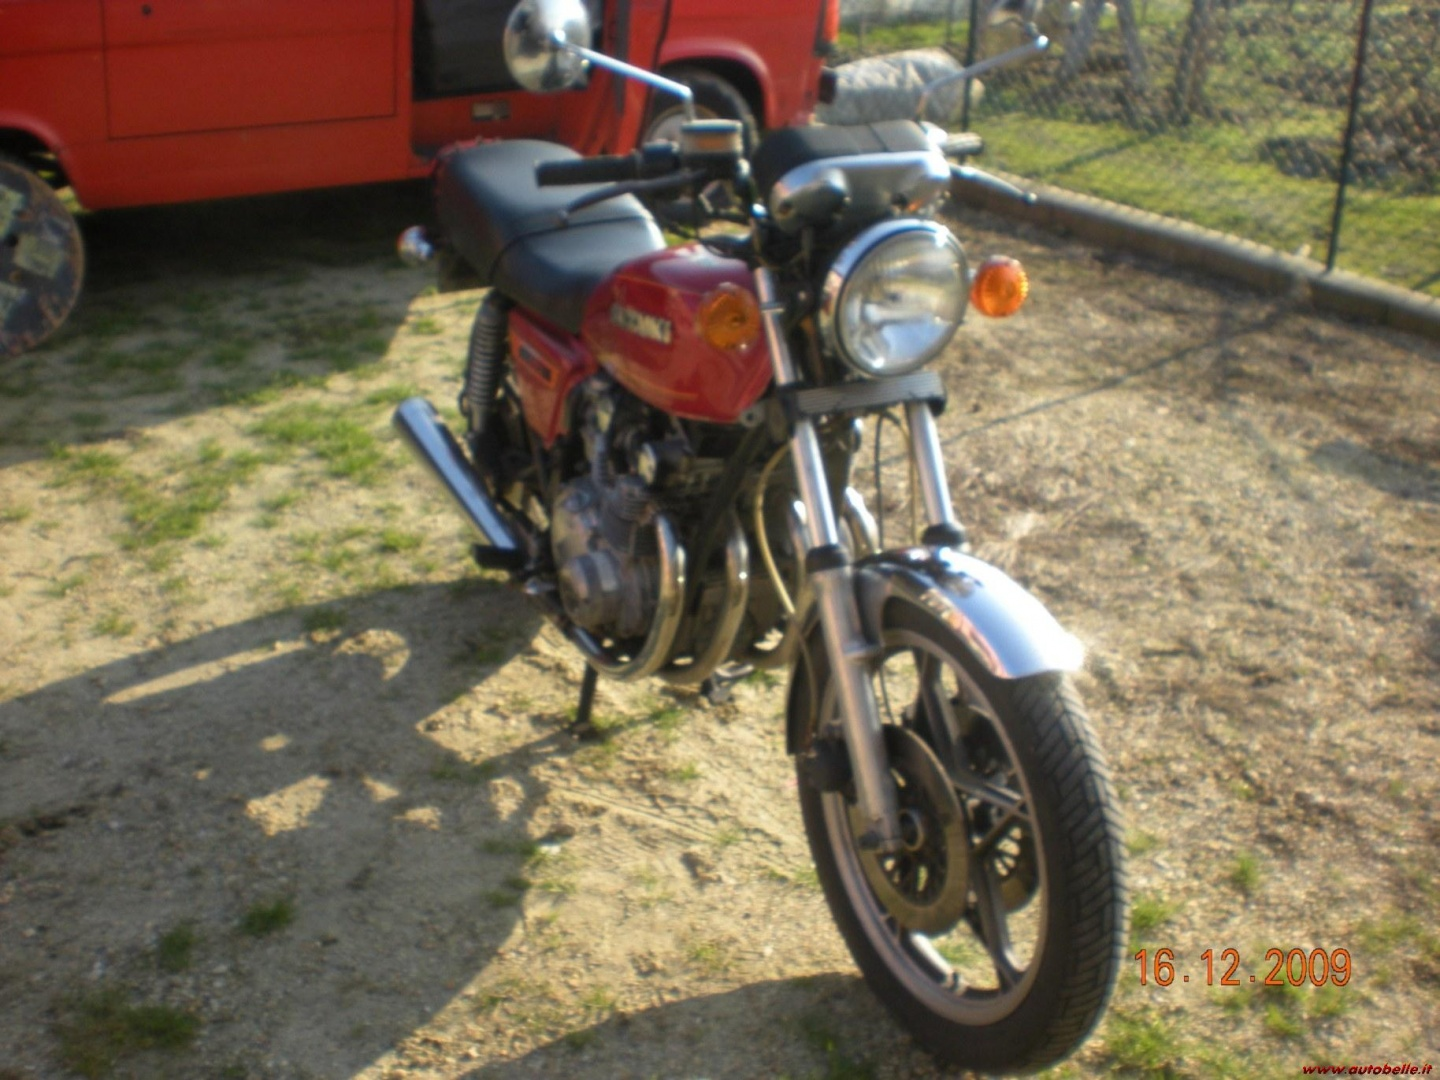 For sale Suzuki gs 550 and